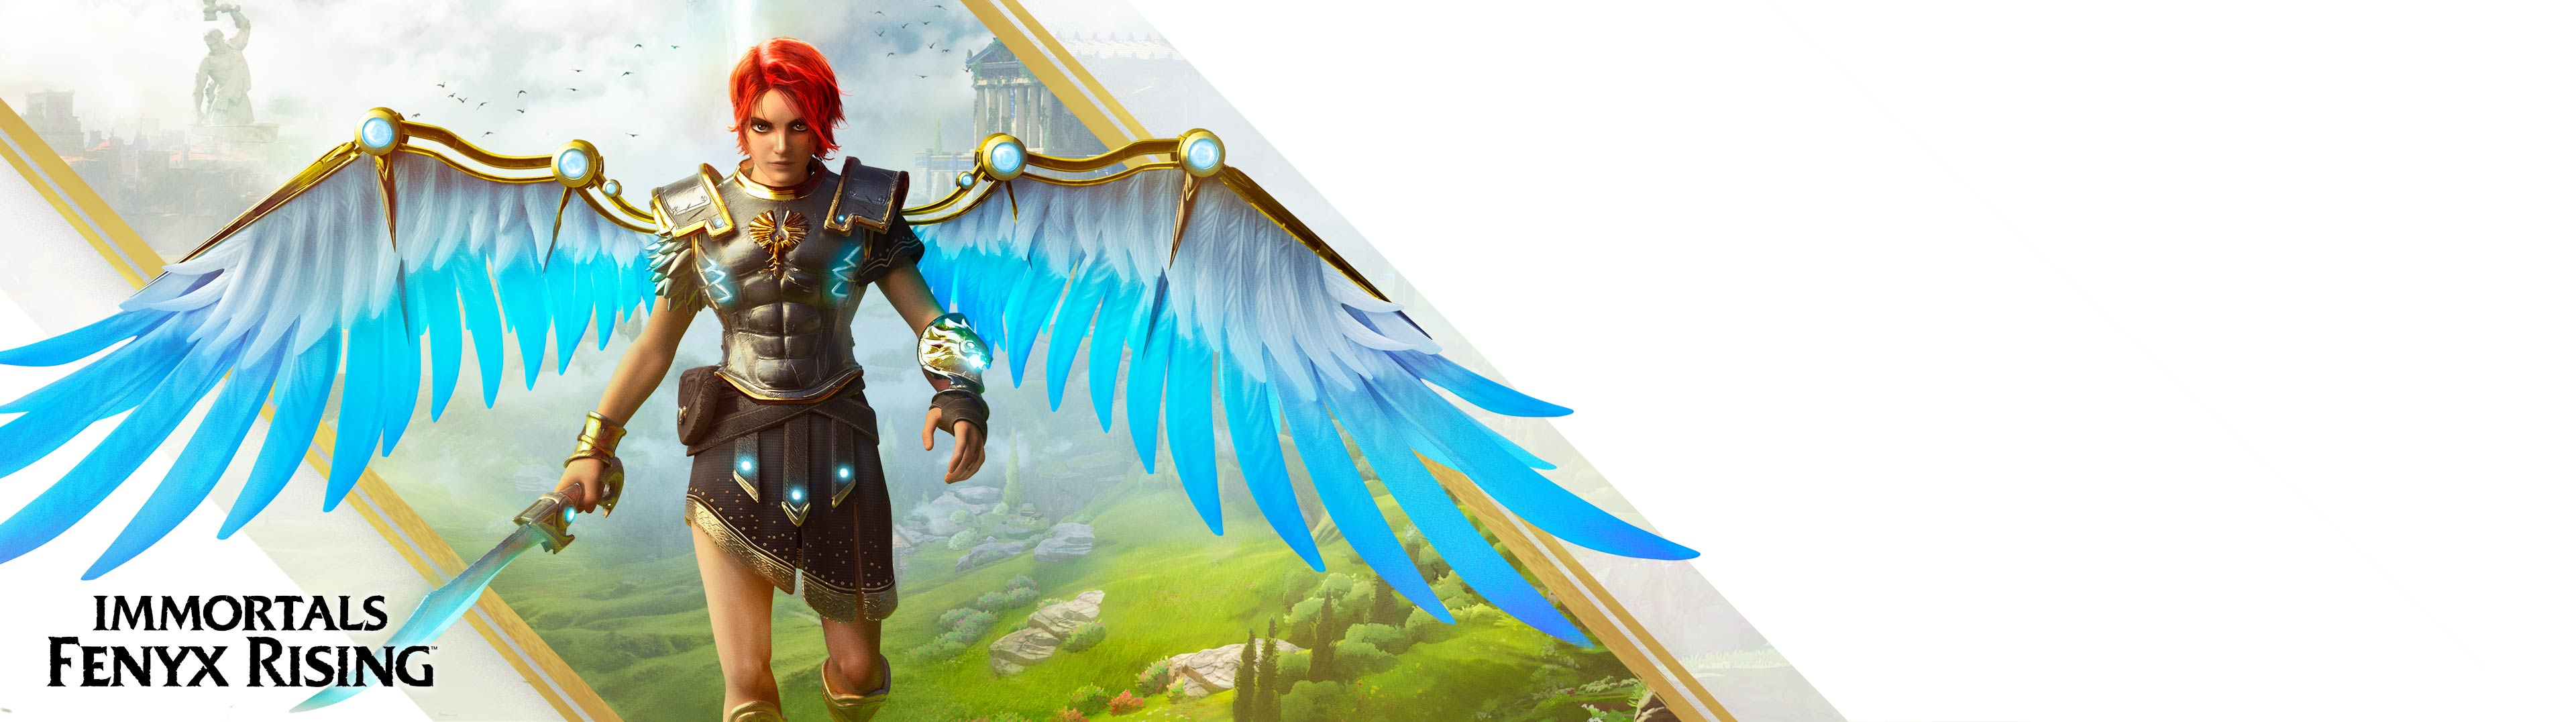 Try Immortals Fenyx Rising for free!